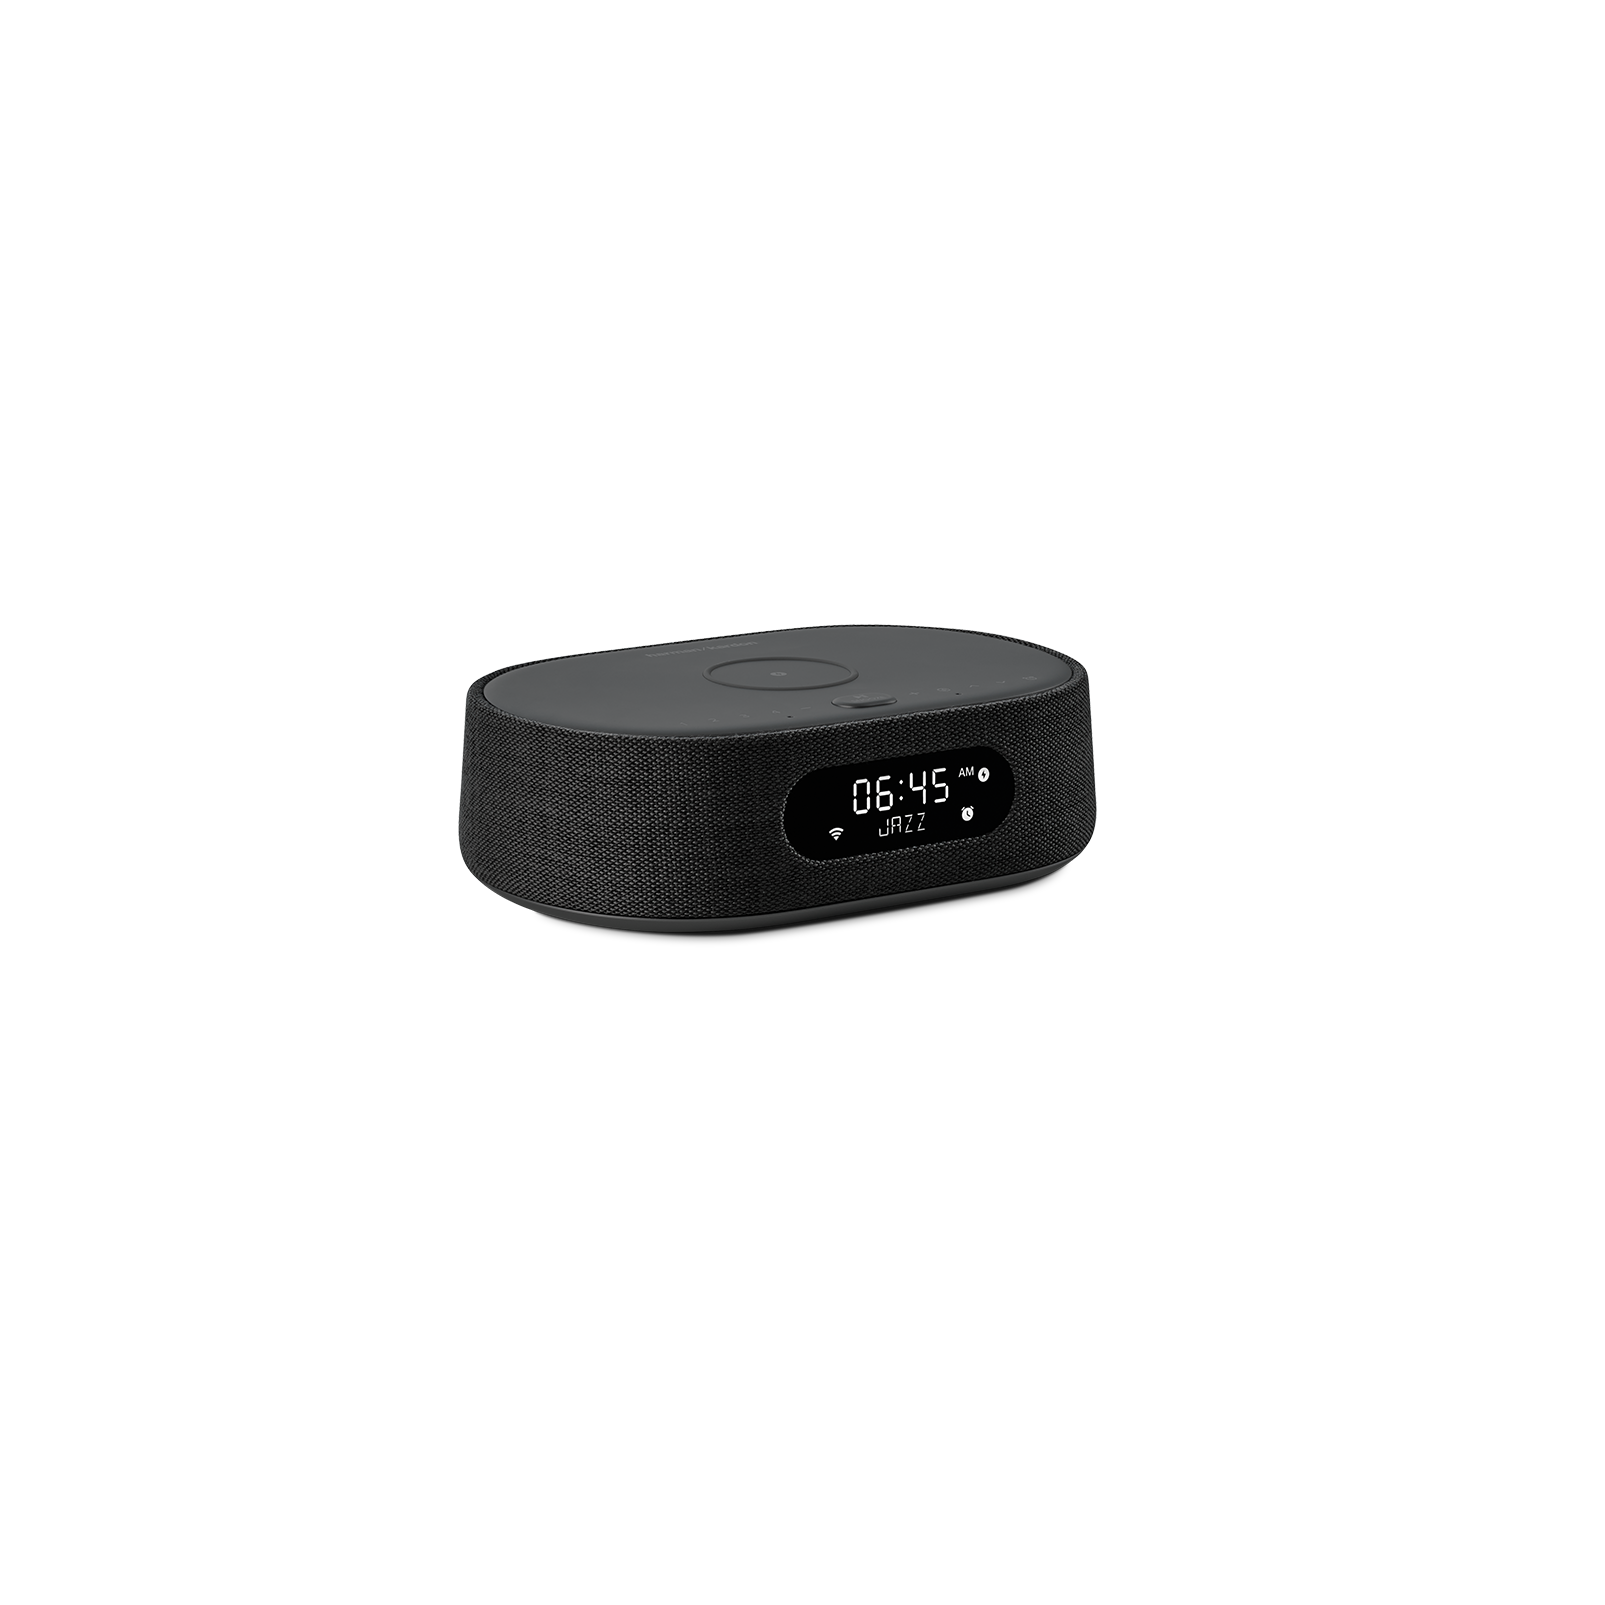 Harman Kardon Citation Oasis - Black - Voice-controlled speaker with DAB/DAB+ radio and wireless phone charging - Hero